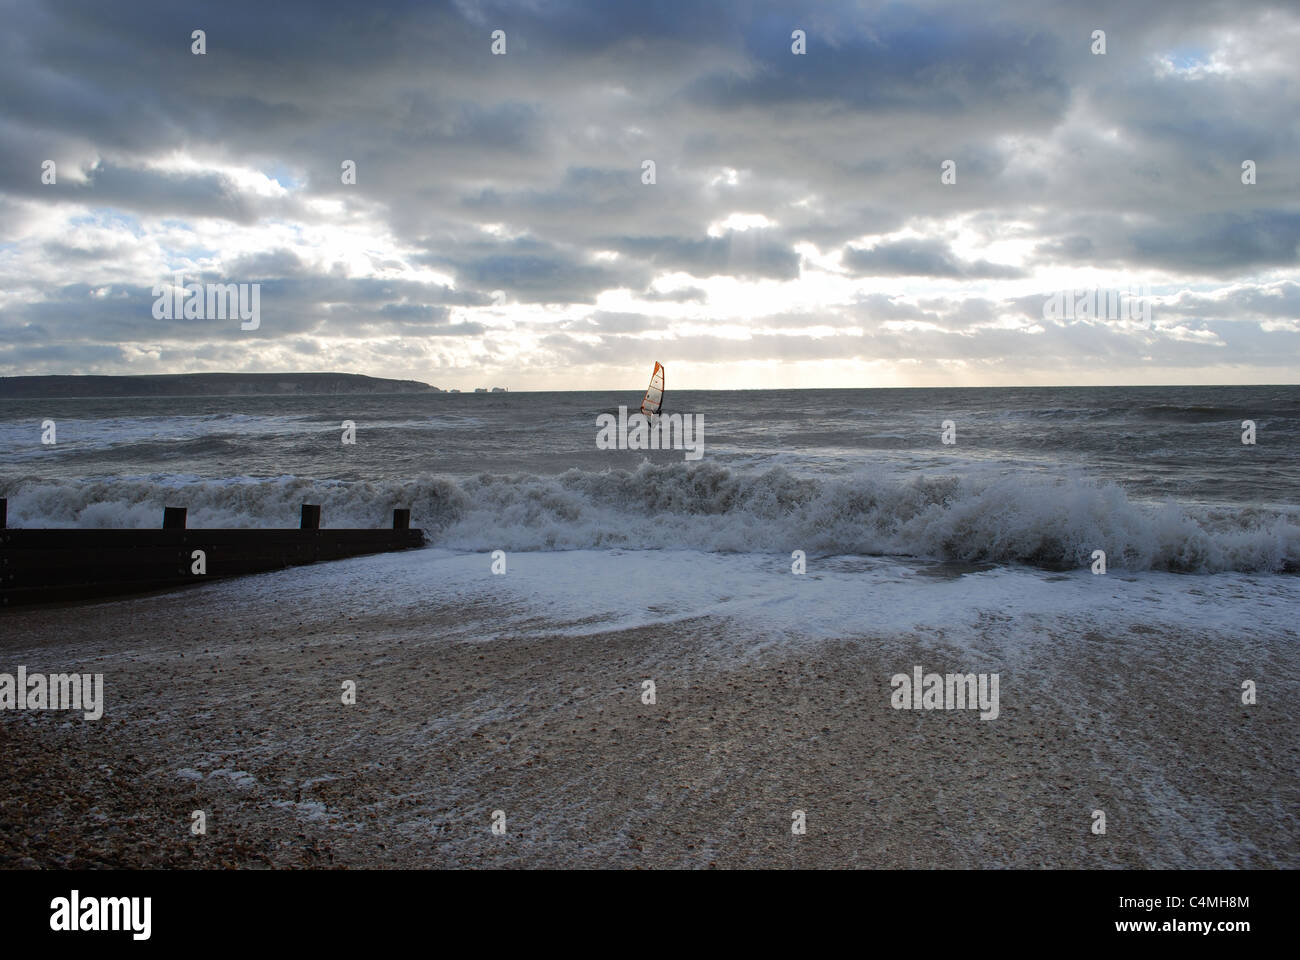 Winter wind surfing with the Needles in the background. - Stock Image